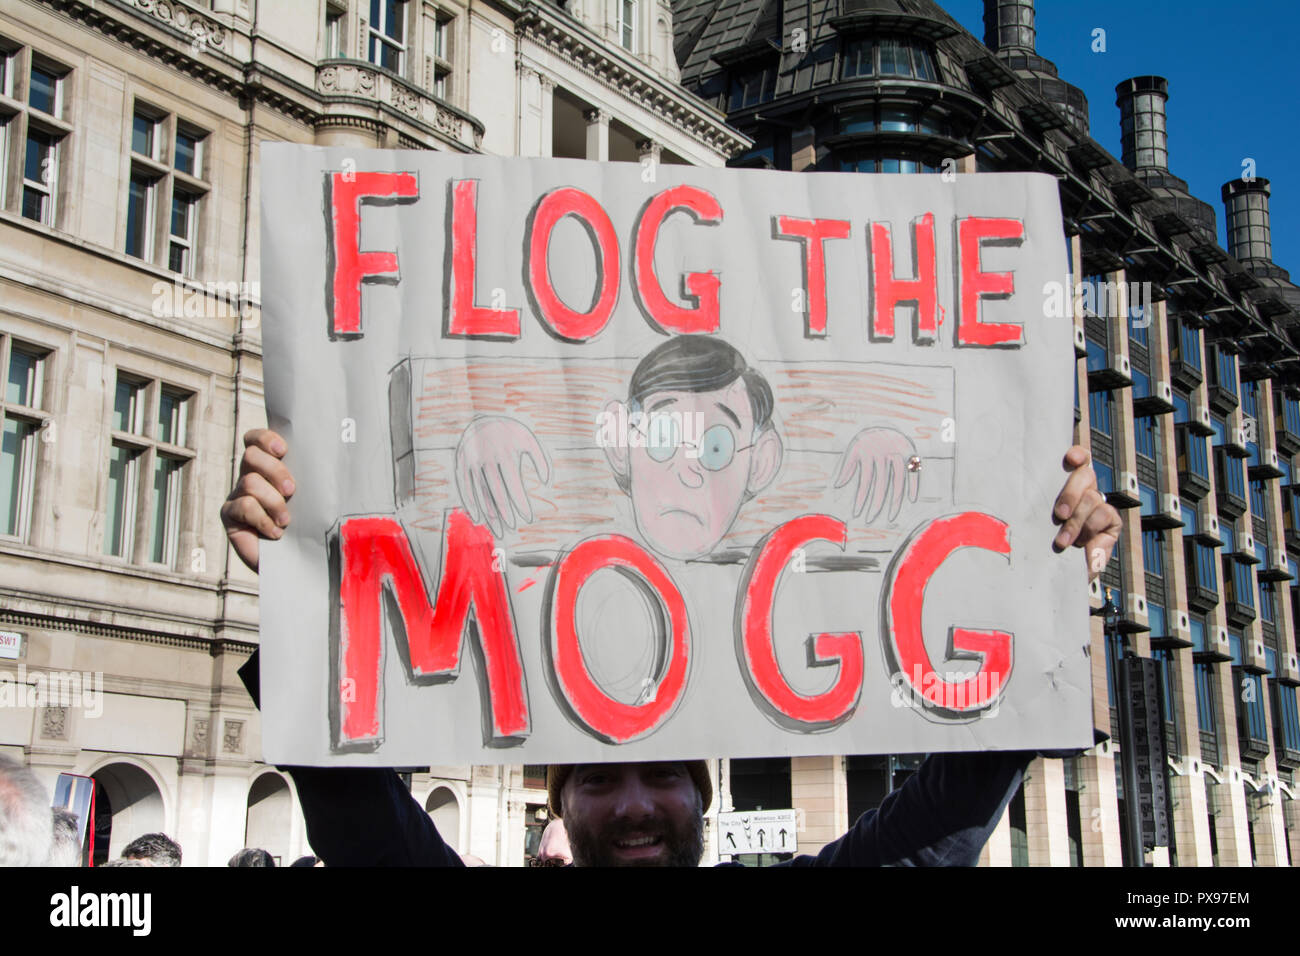 London, England, UK. 20 October 2018.  Flog the Mogg placard. More than 600,000 people took part in today's People's Vote march to Parliament Square © Benjamin John/ Alamy Live News. - Stock Image